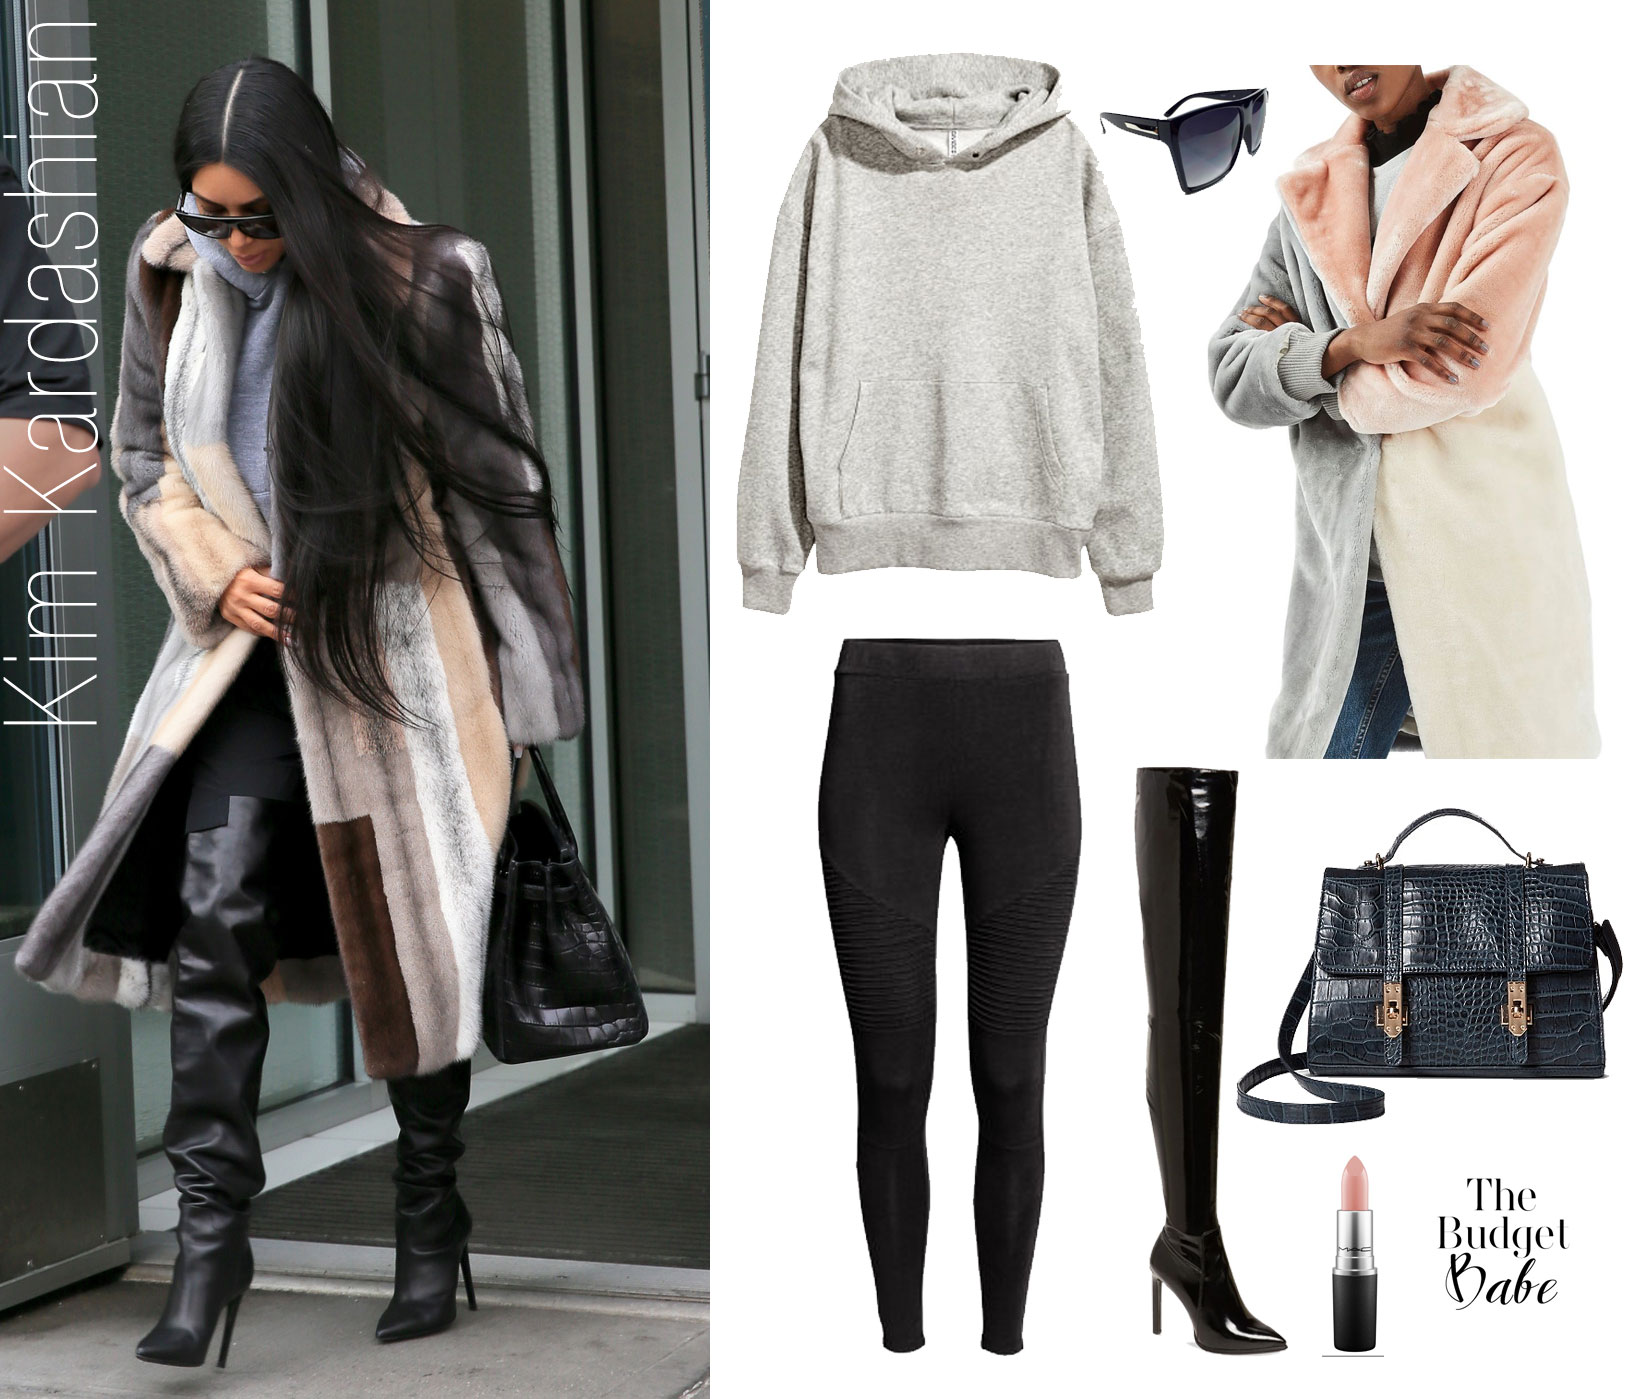 Shop Kim Kardashian's multi-color fur coat, hooded sweatshirt and over-the-knee boots look for less.